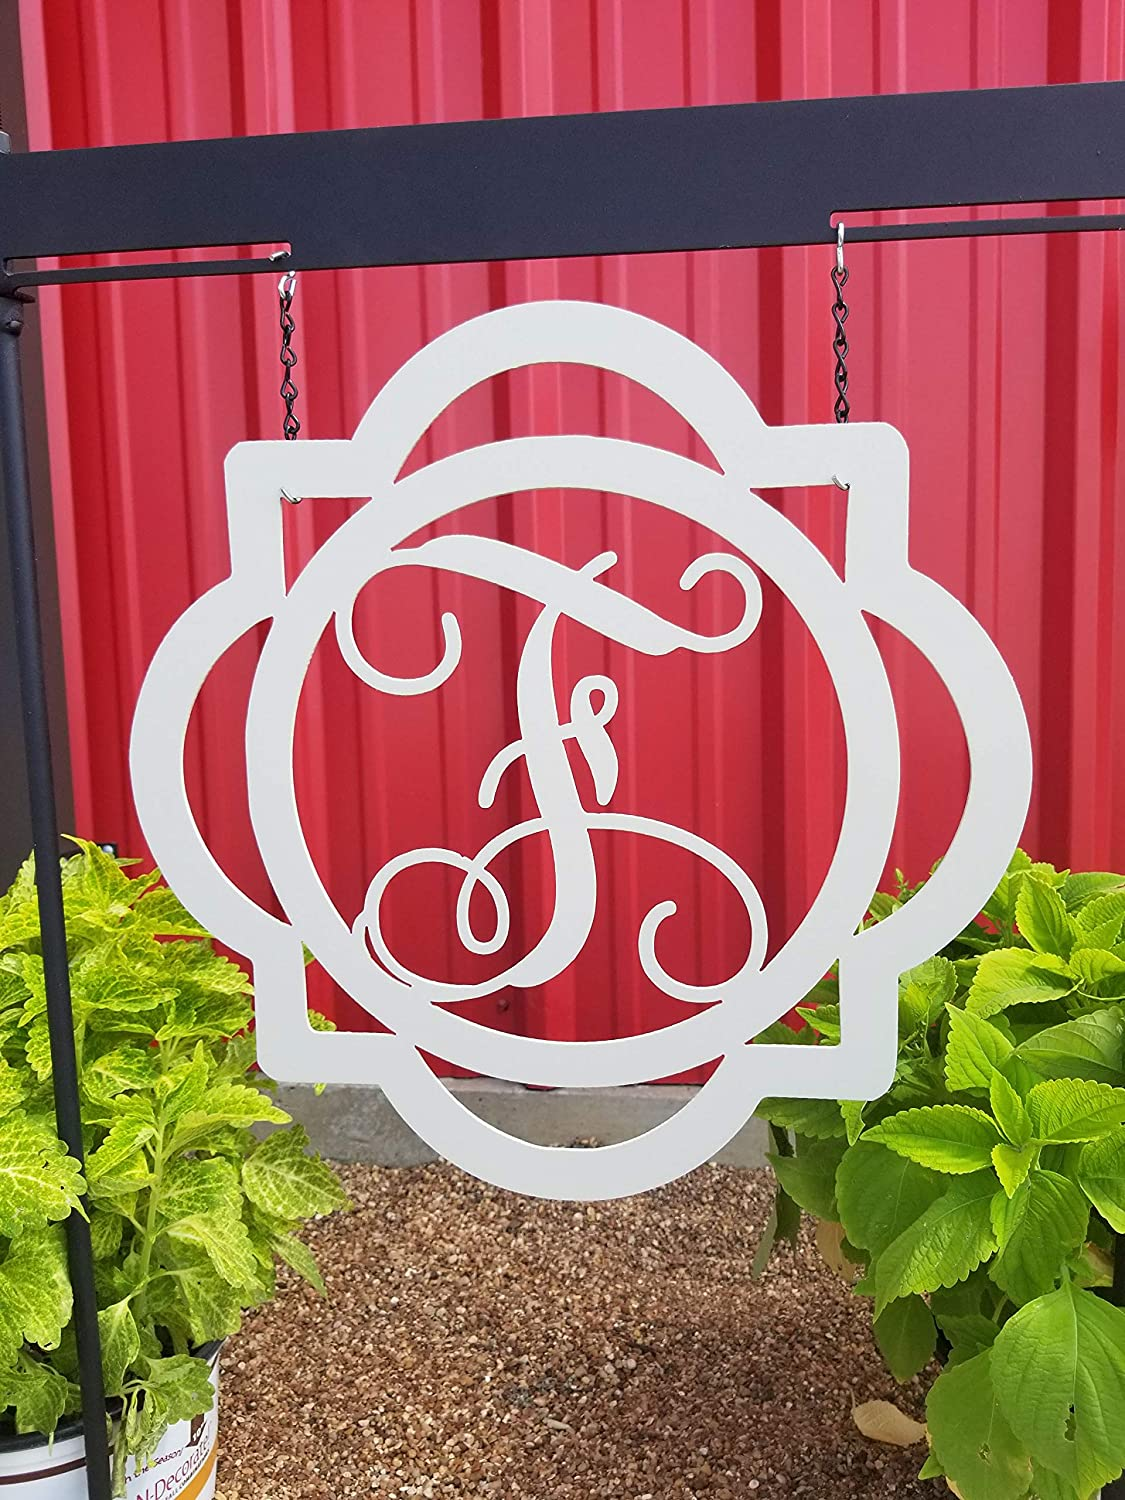 Tamengi Letter F Metal Monogram Personalized Metal Sign Wall Hanging Wall Address Plaque Room Decor Monogram Wall Art Outdoor Indoor Metal Sign 14inch